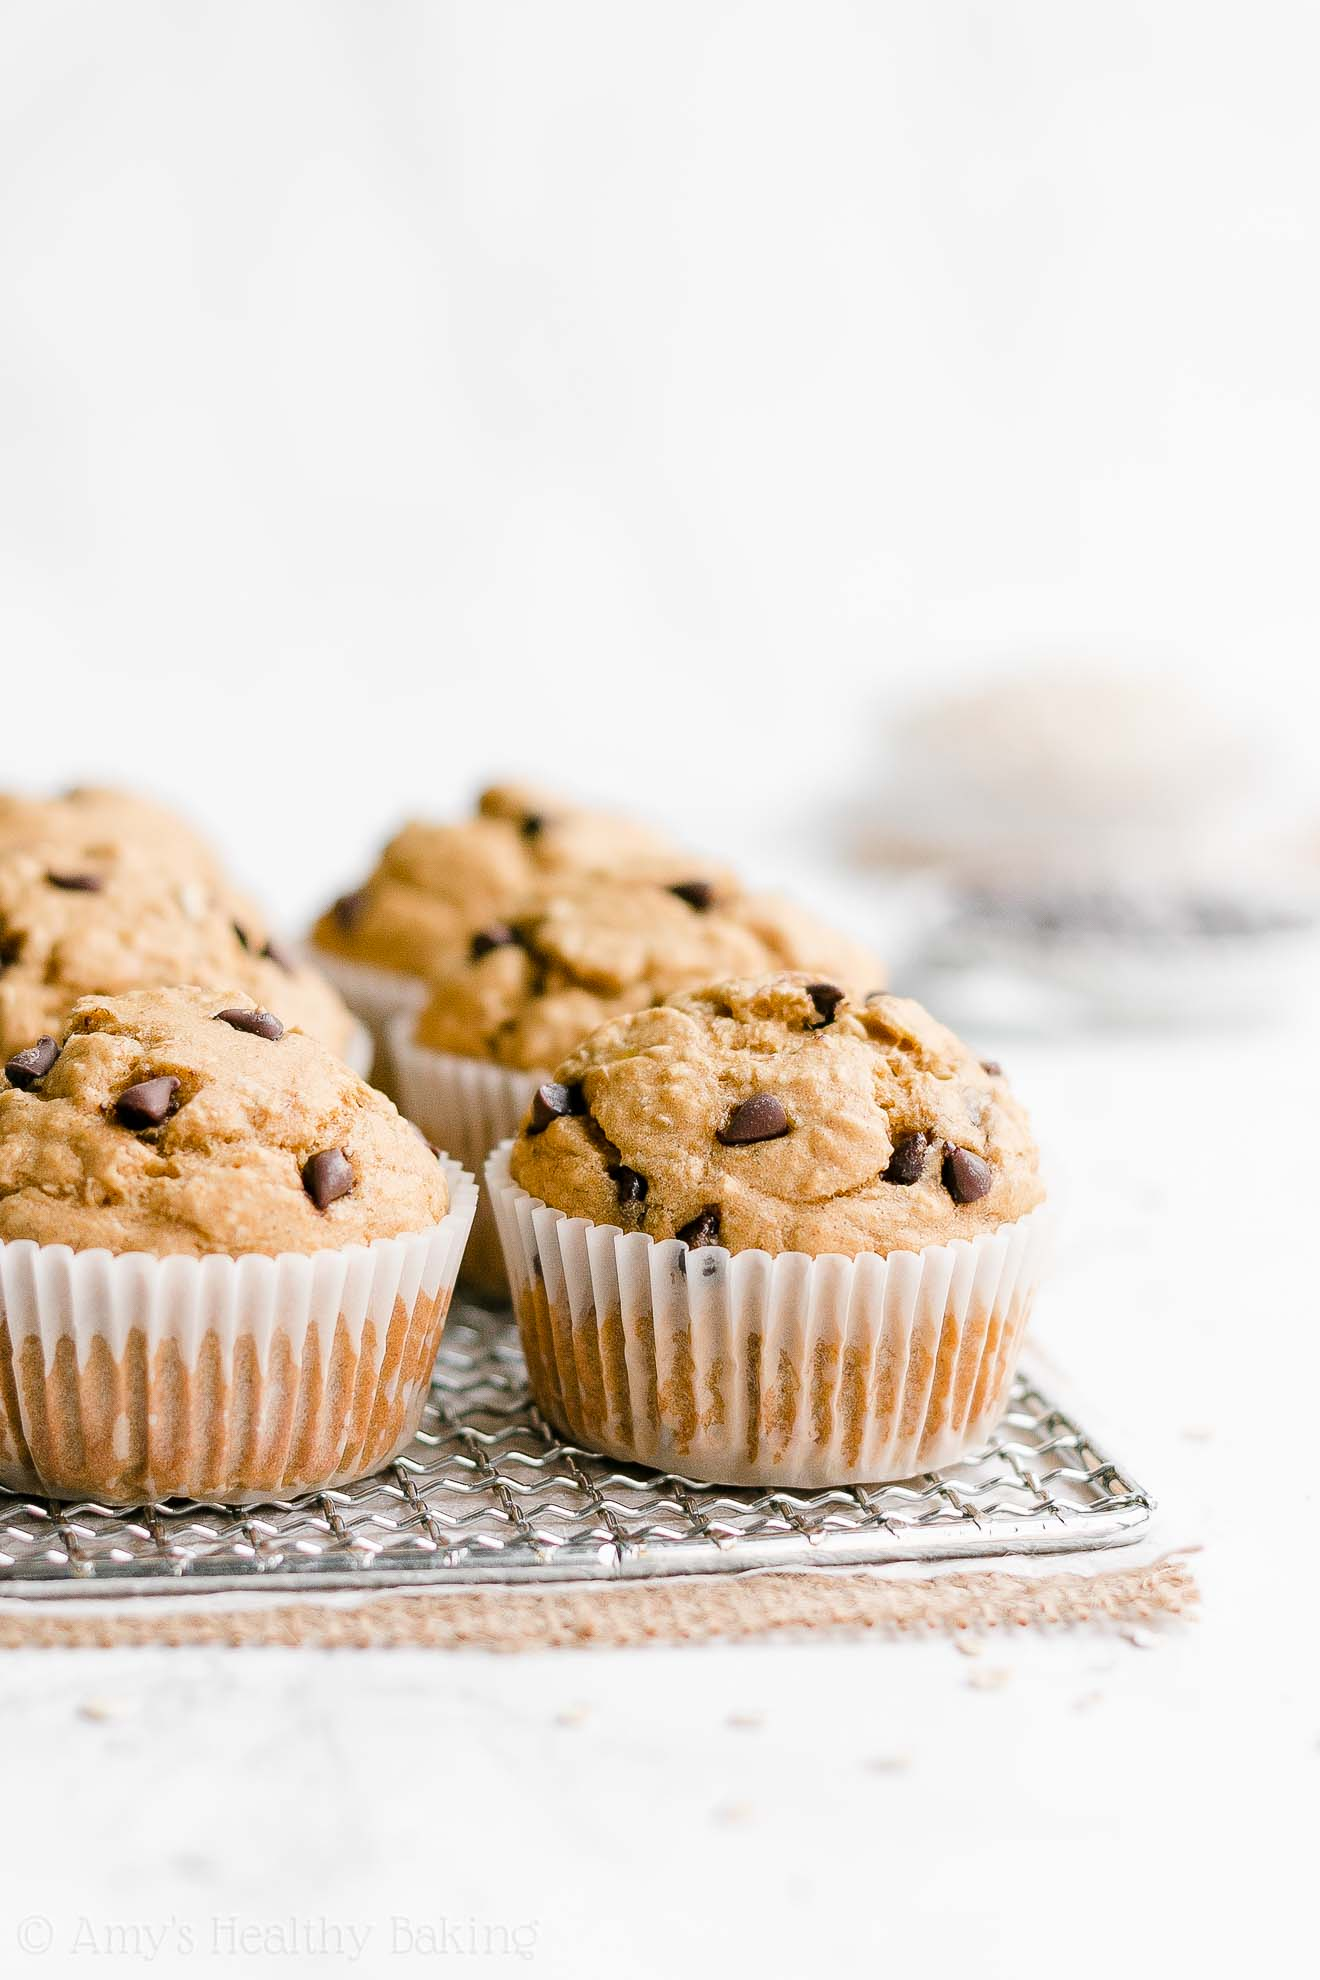 Easy Healthy Gluten Free Sugar Free Banana Chocolate Chip Oatmeal Muffins